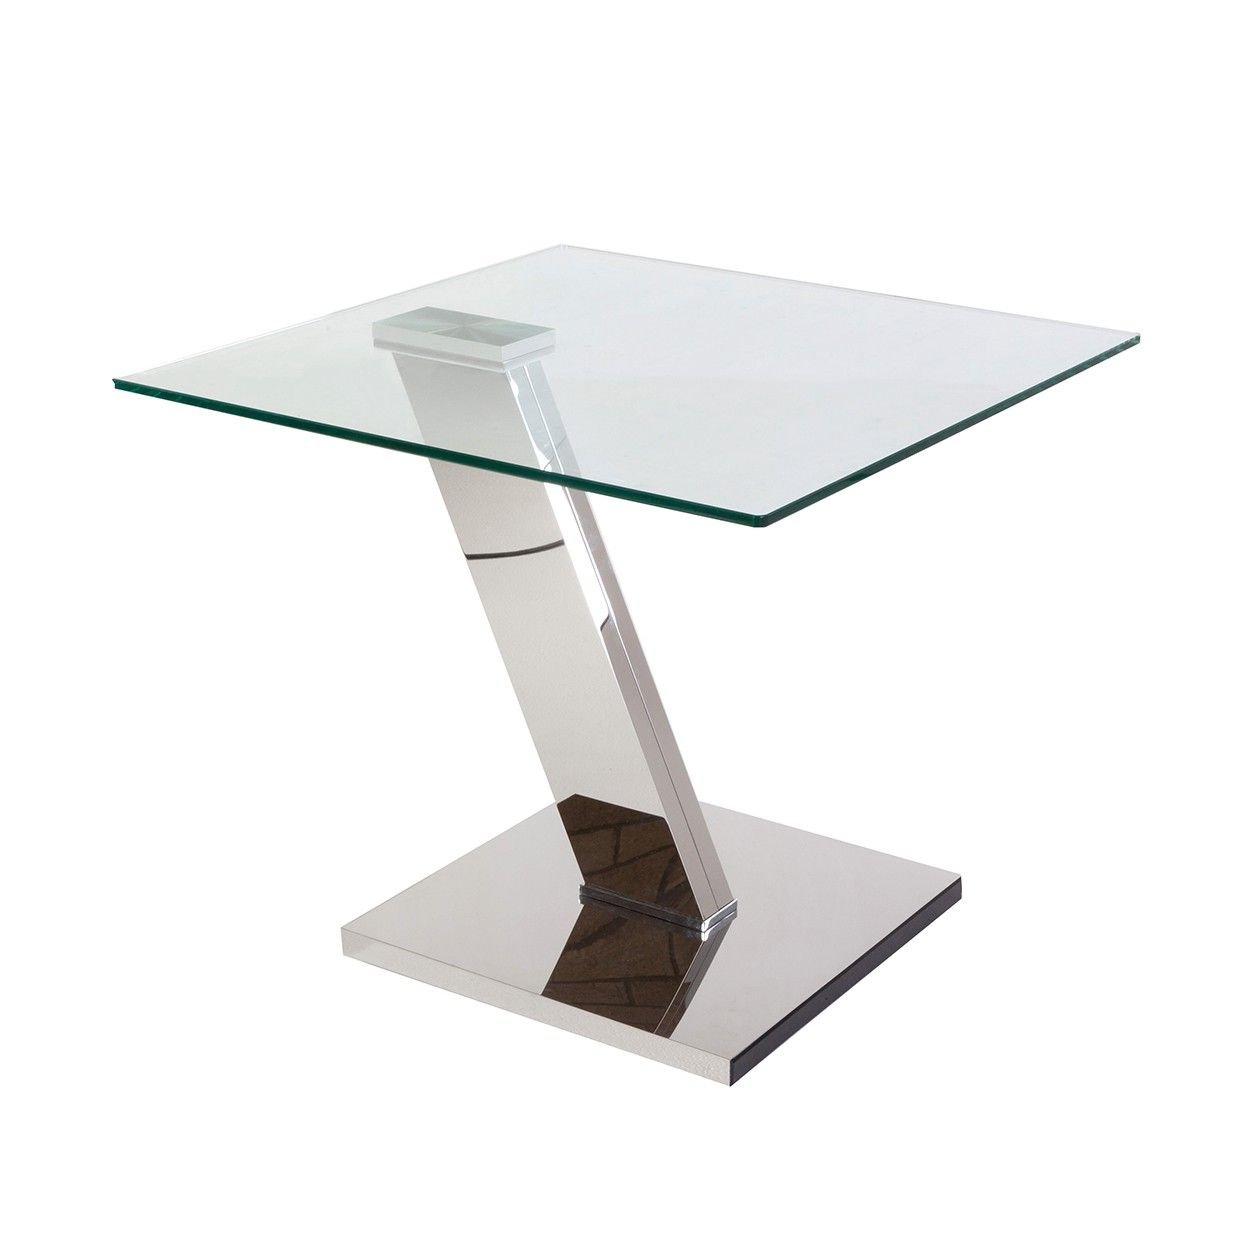 Modern Edge Stainless Steel And Glass Table *Free Local